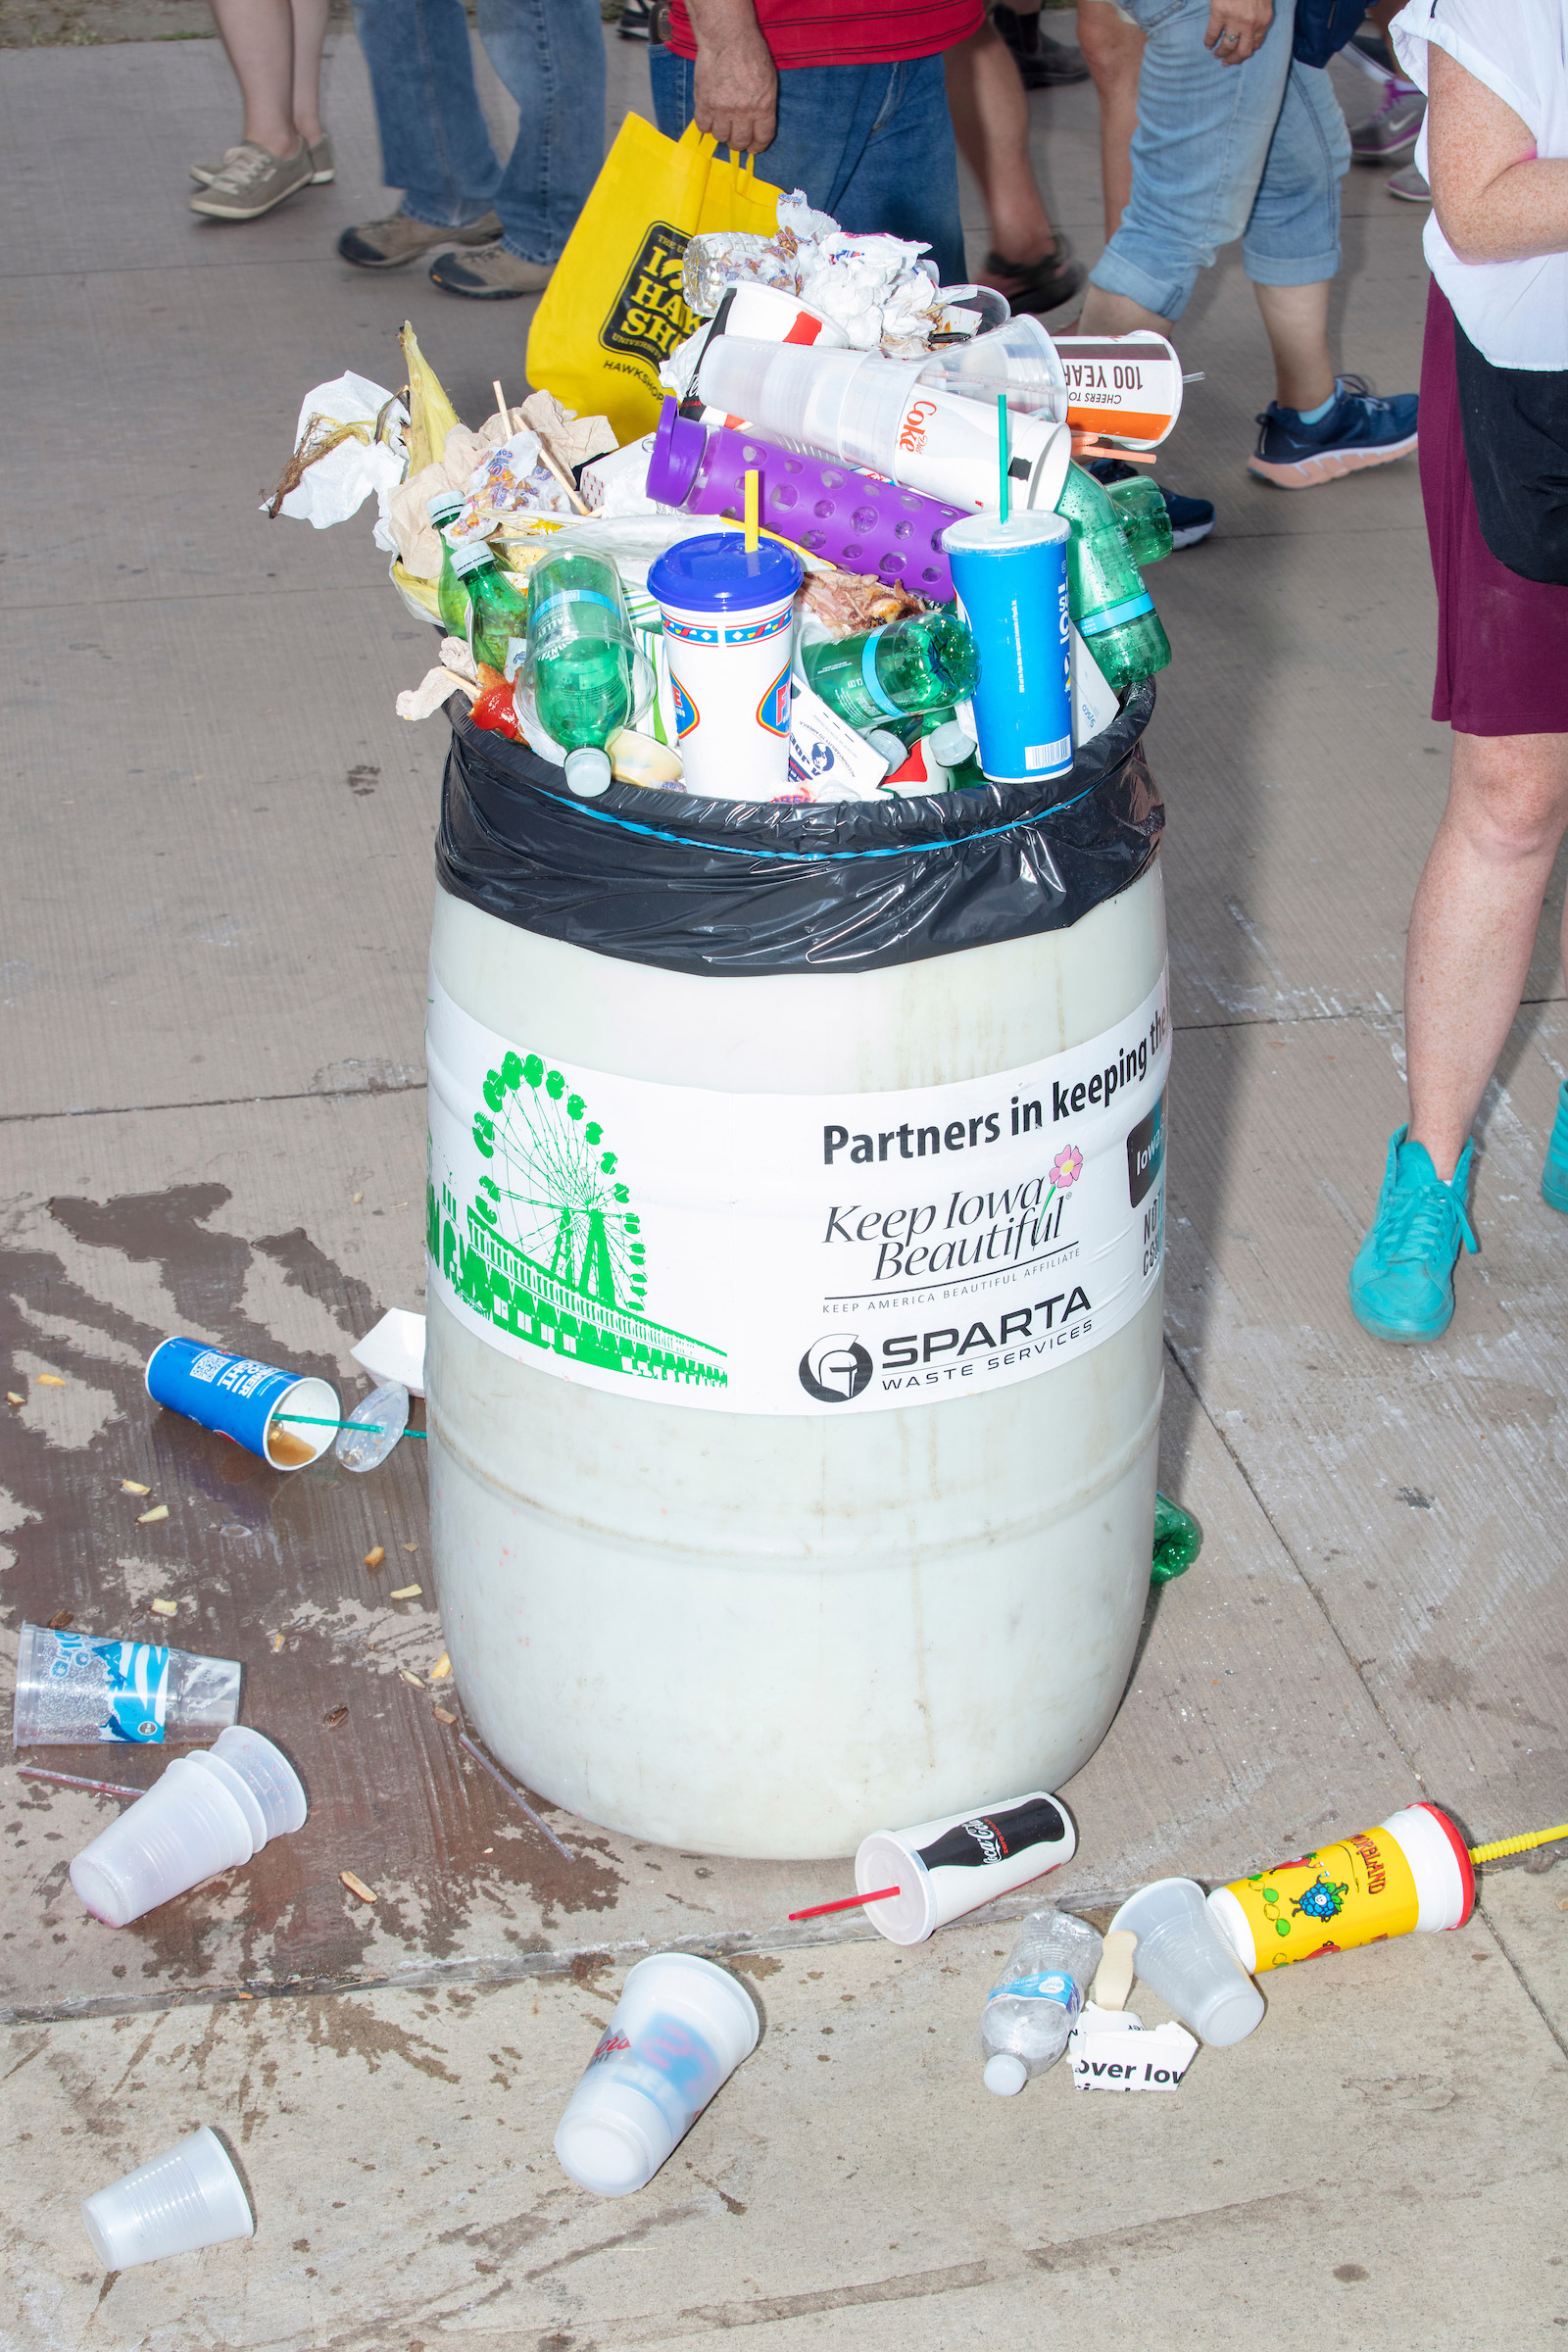 An overflowing trash can is seen at the Iowa State Fair on Sat., Aug. 10, 2019.